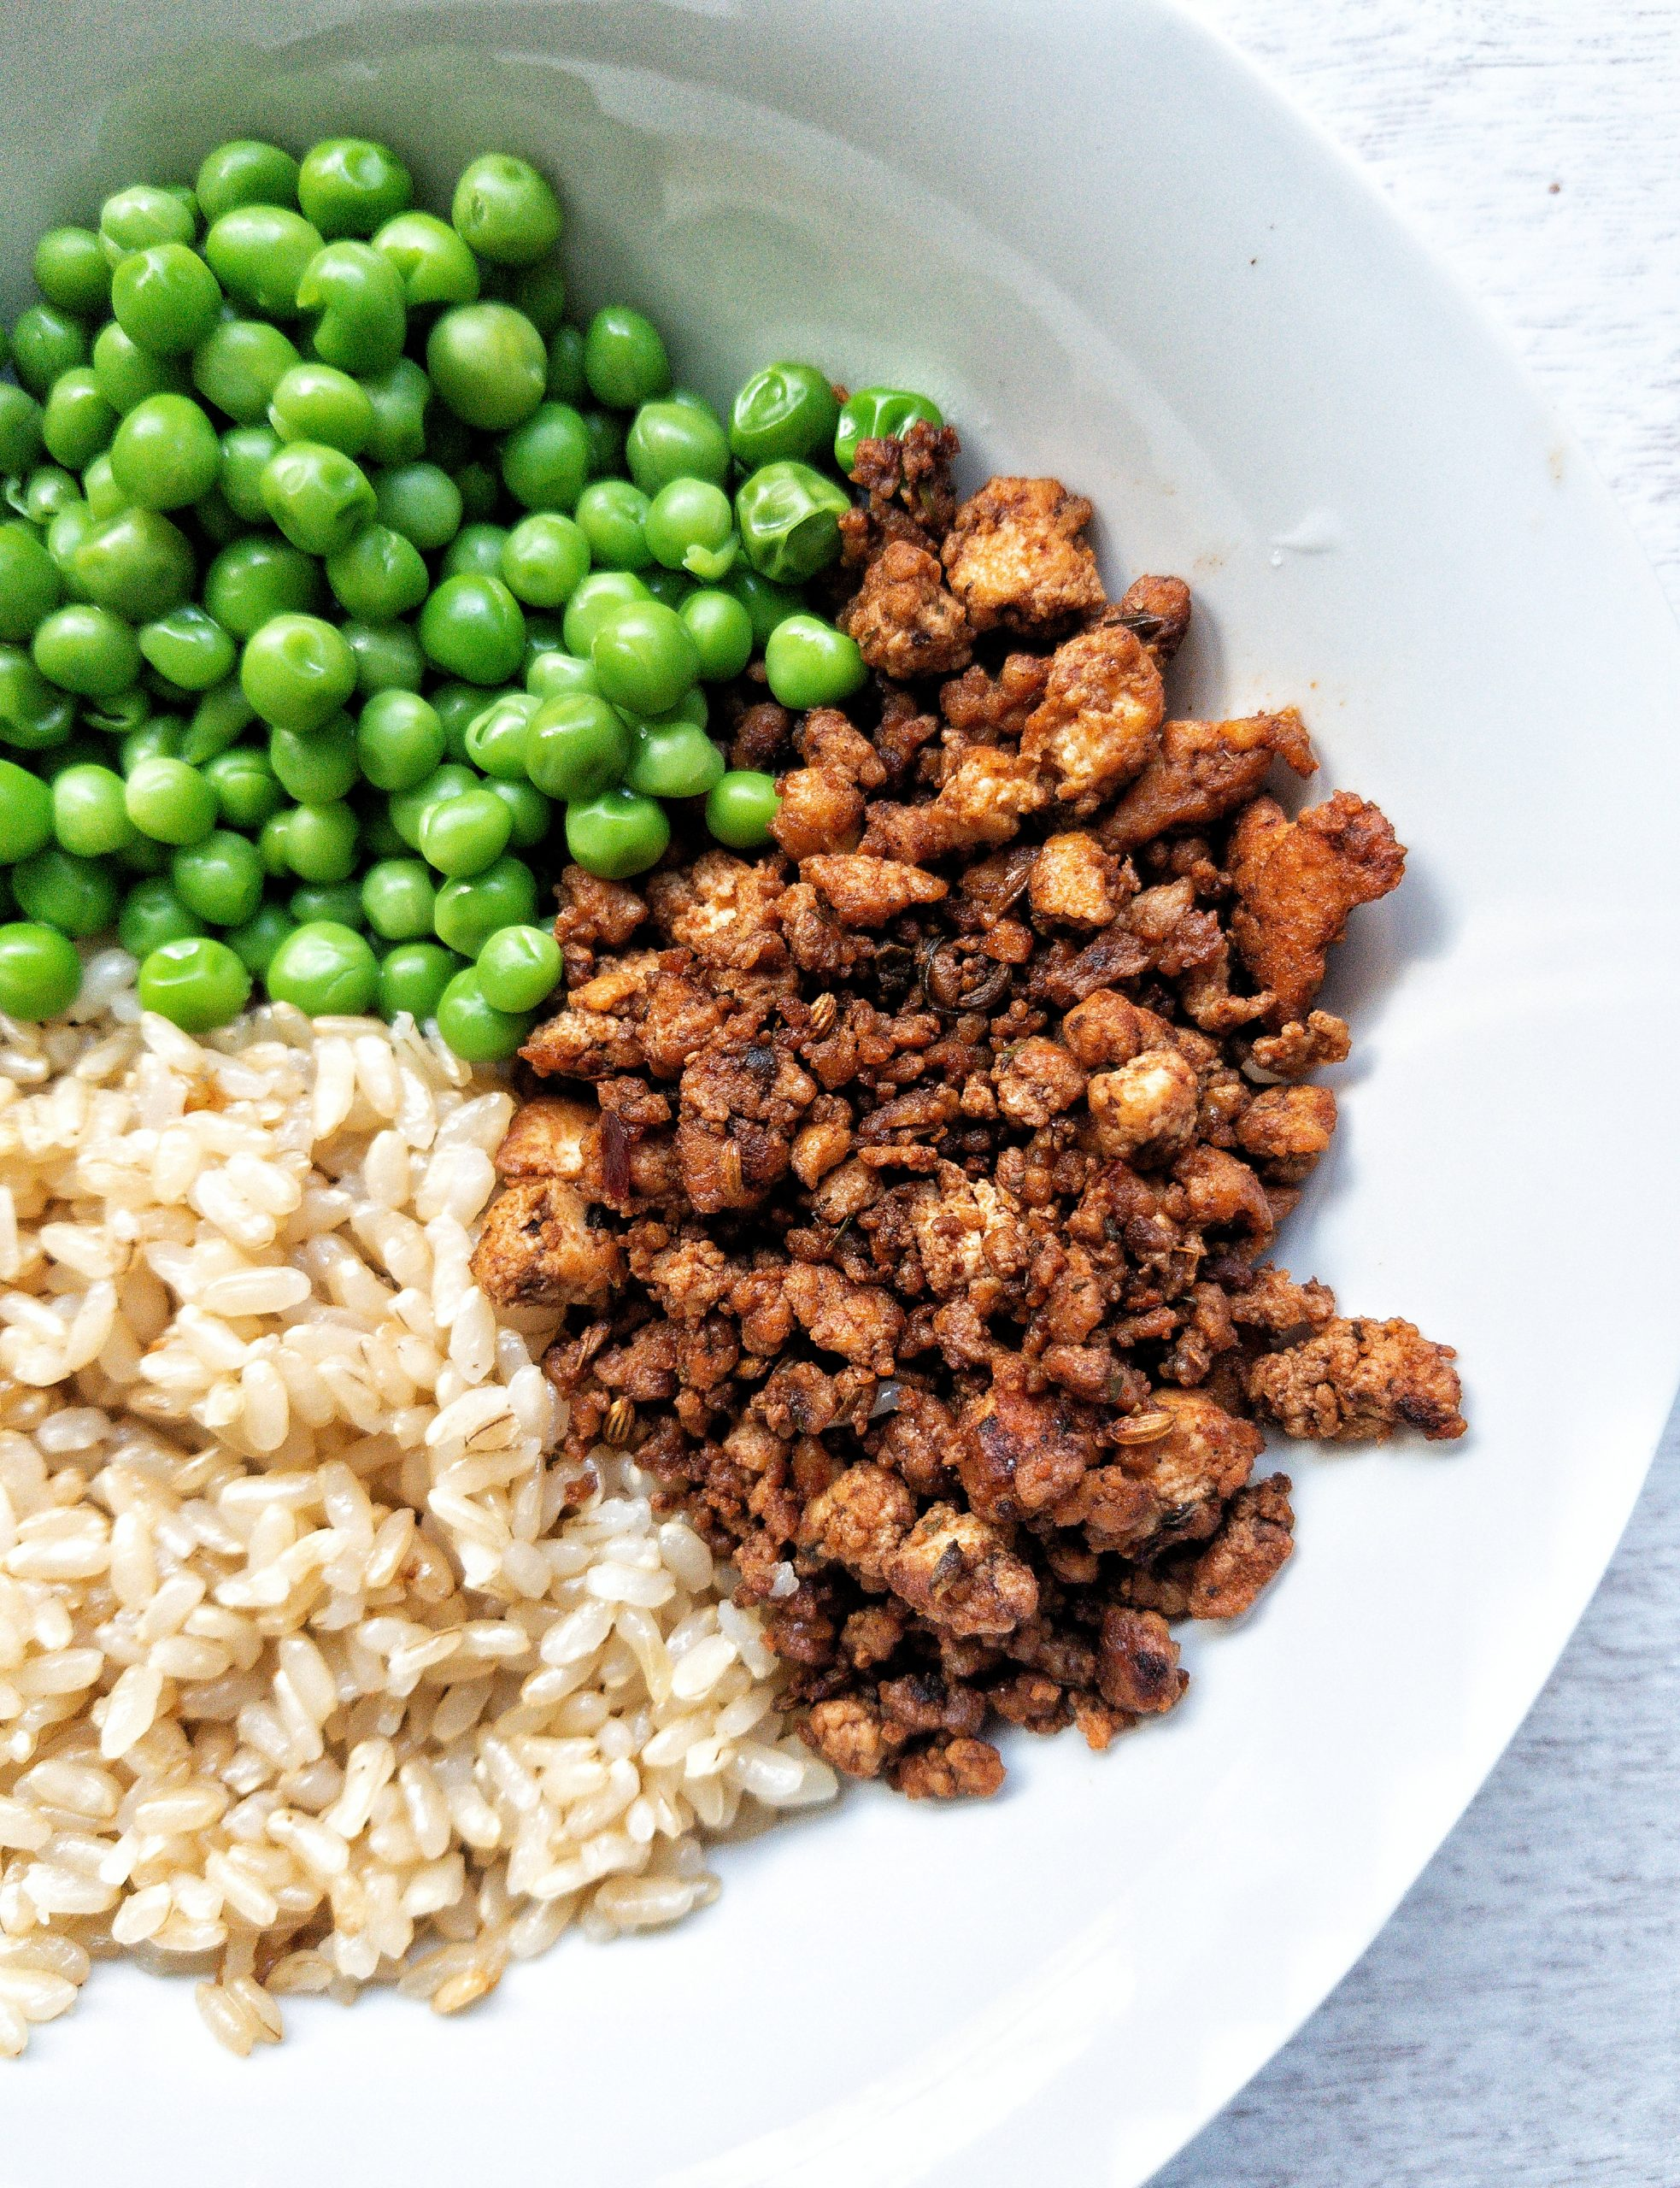 Bowl with a side of tofu sausage crumble, green peas, and brown rice